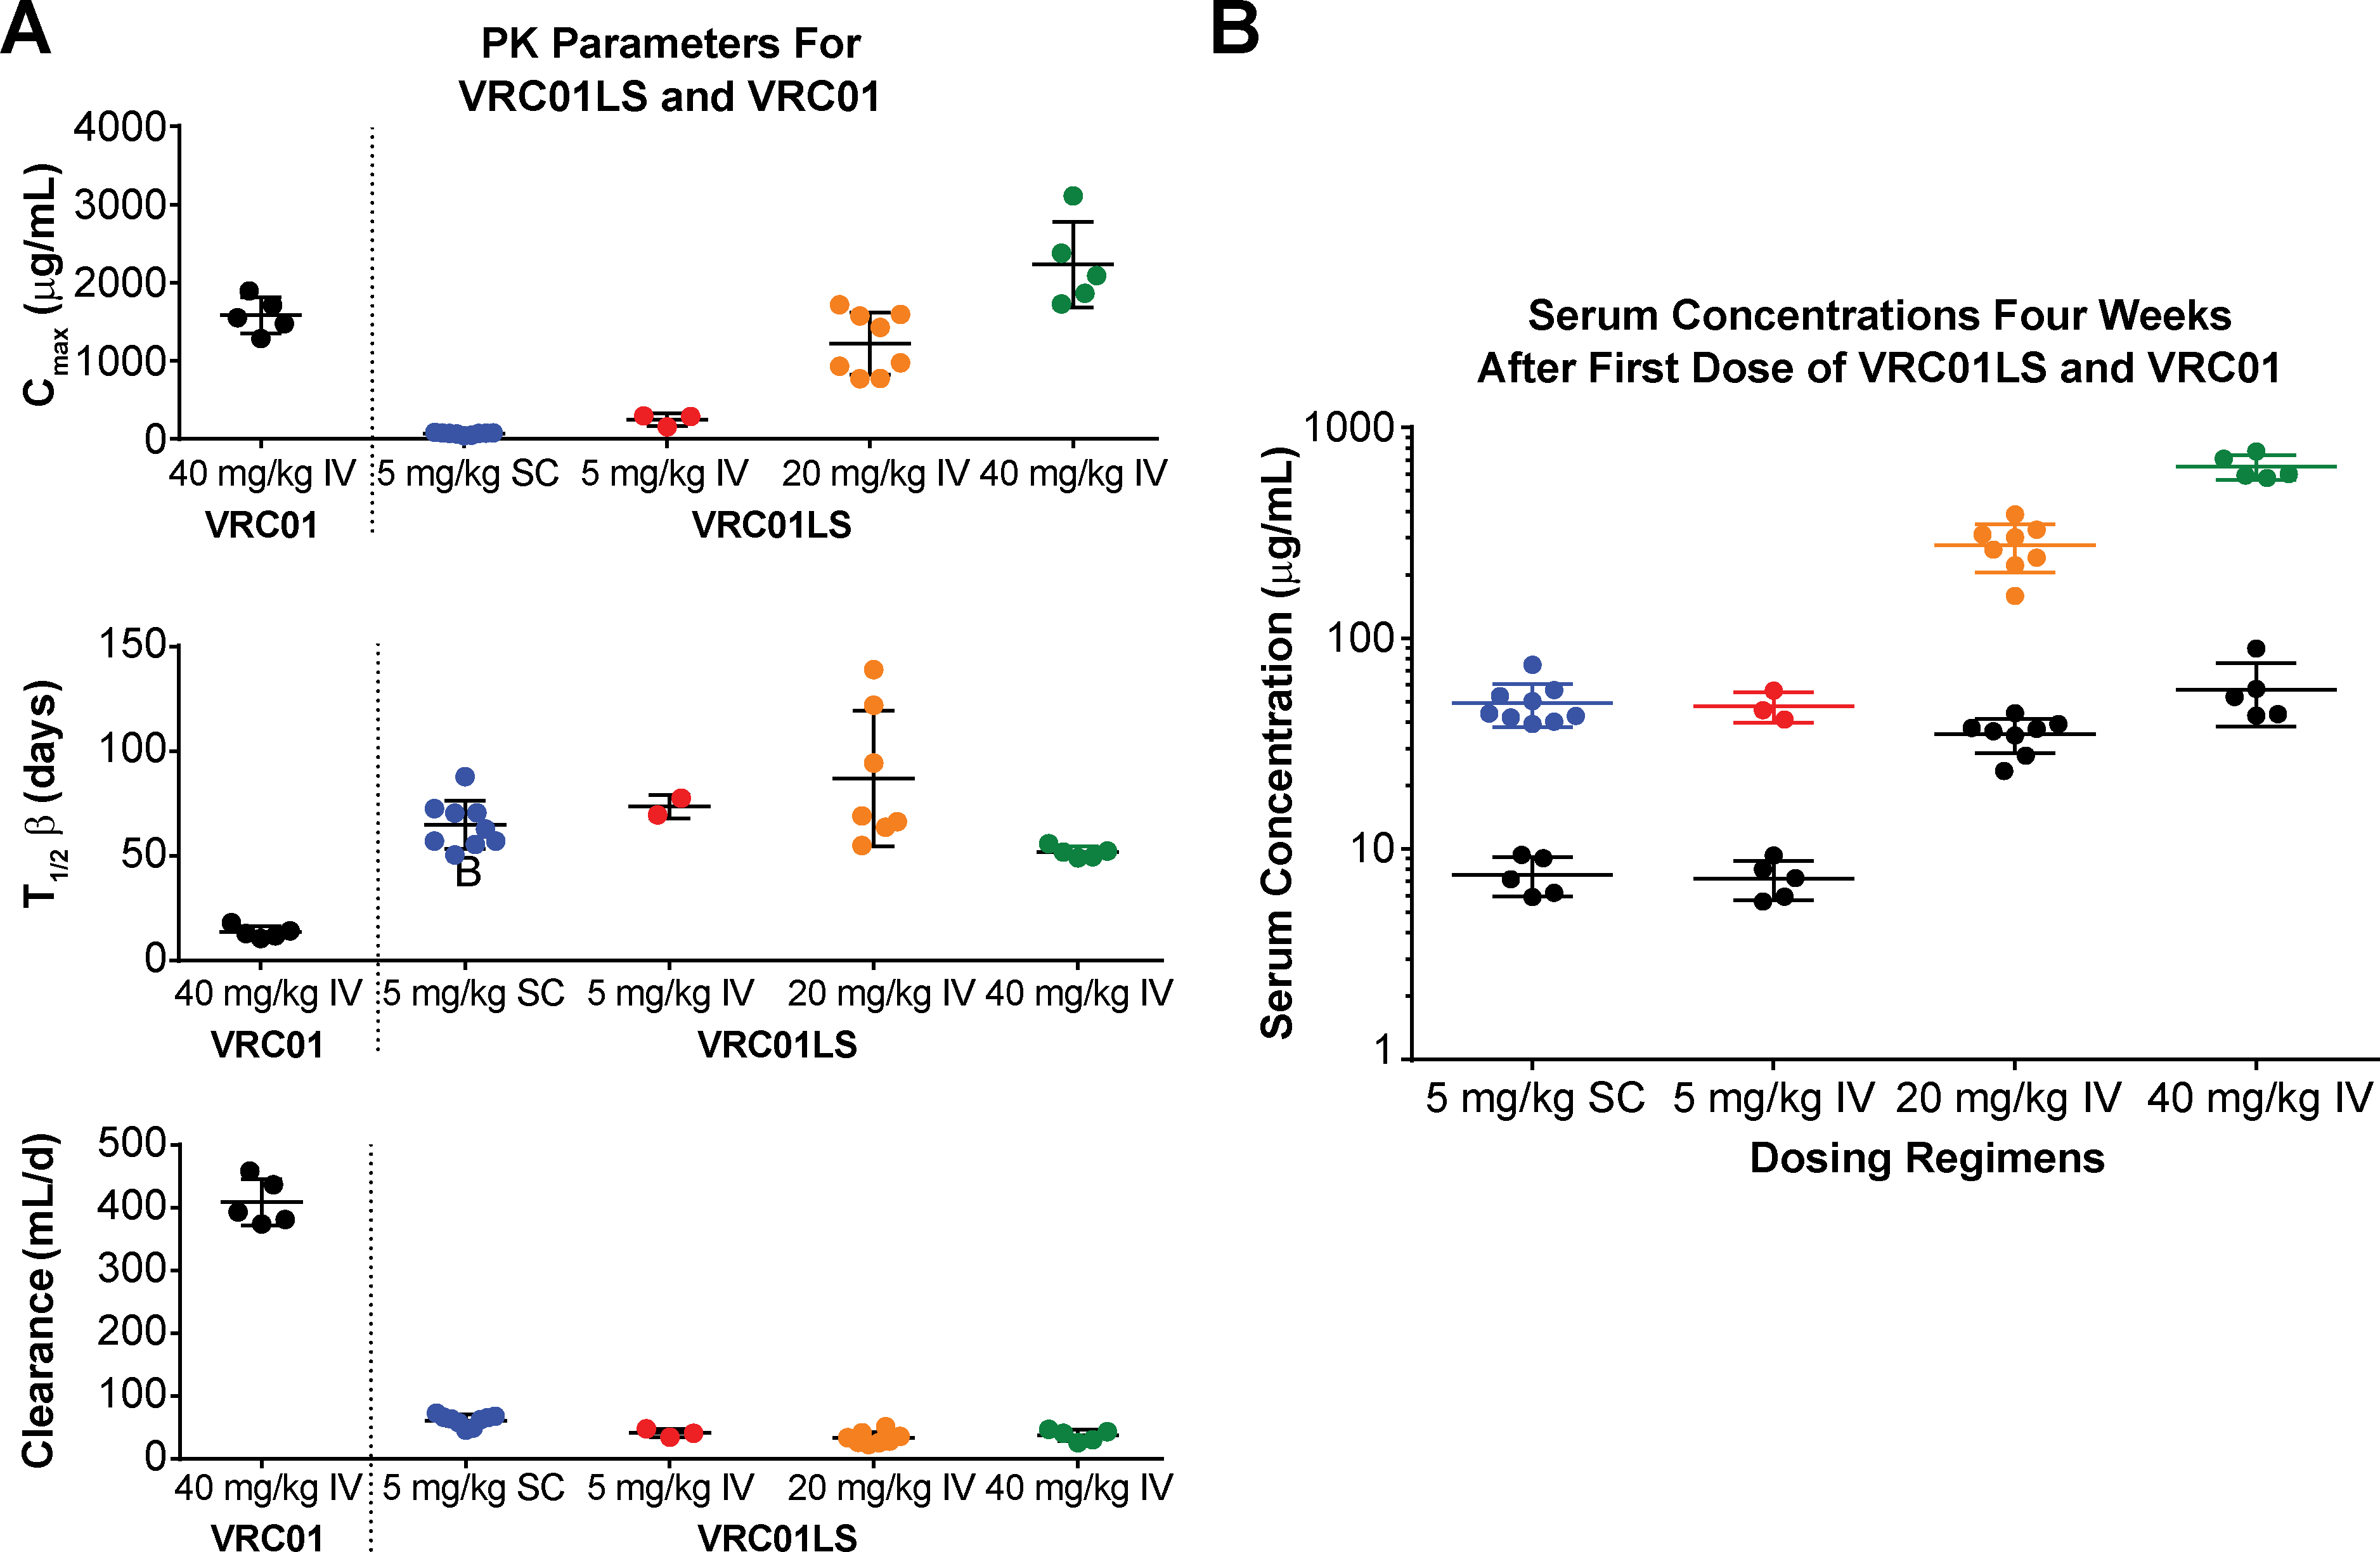 Post infusion serum antibody concentrations and PK parameters by dose and route.